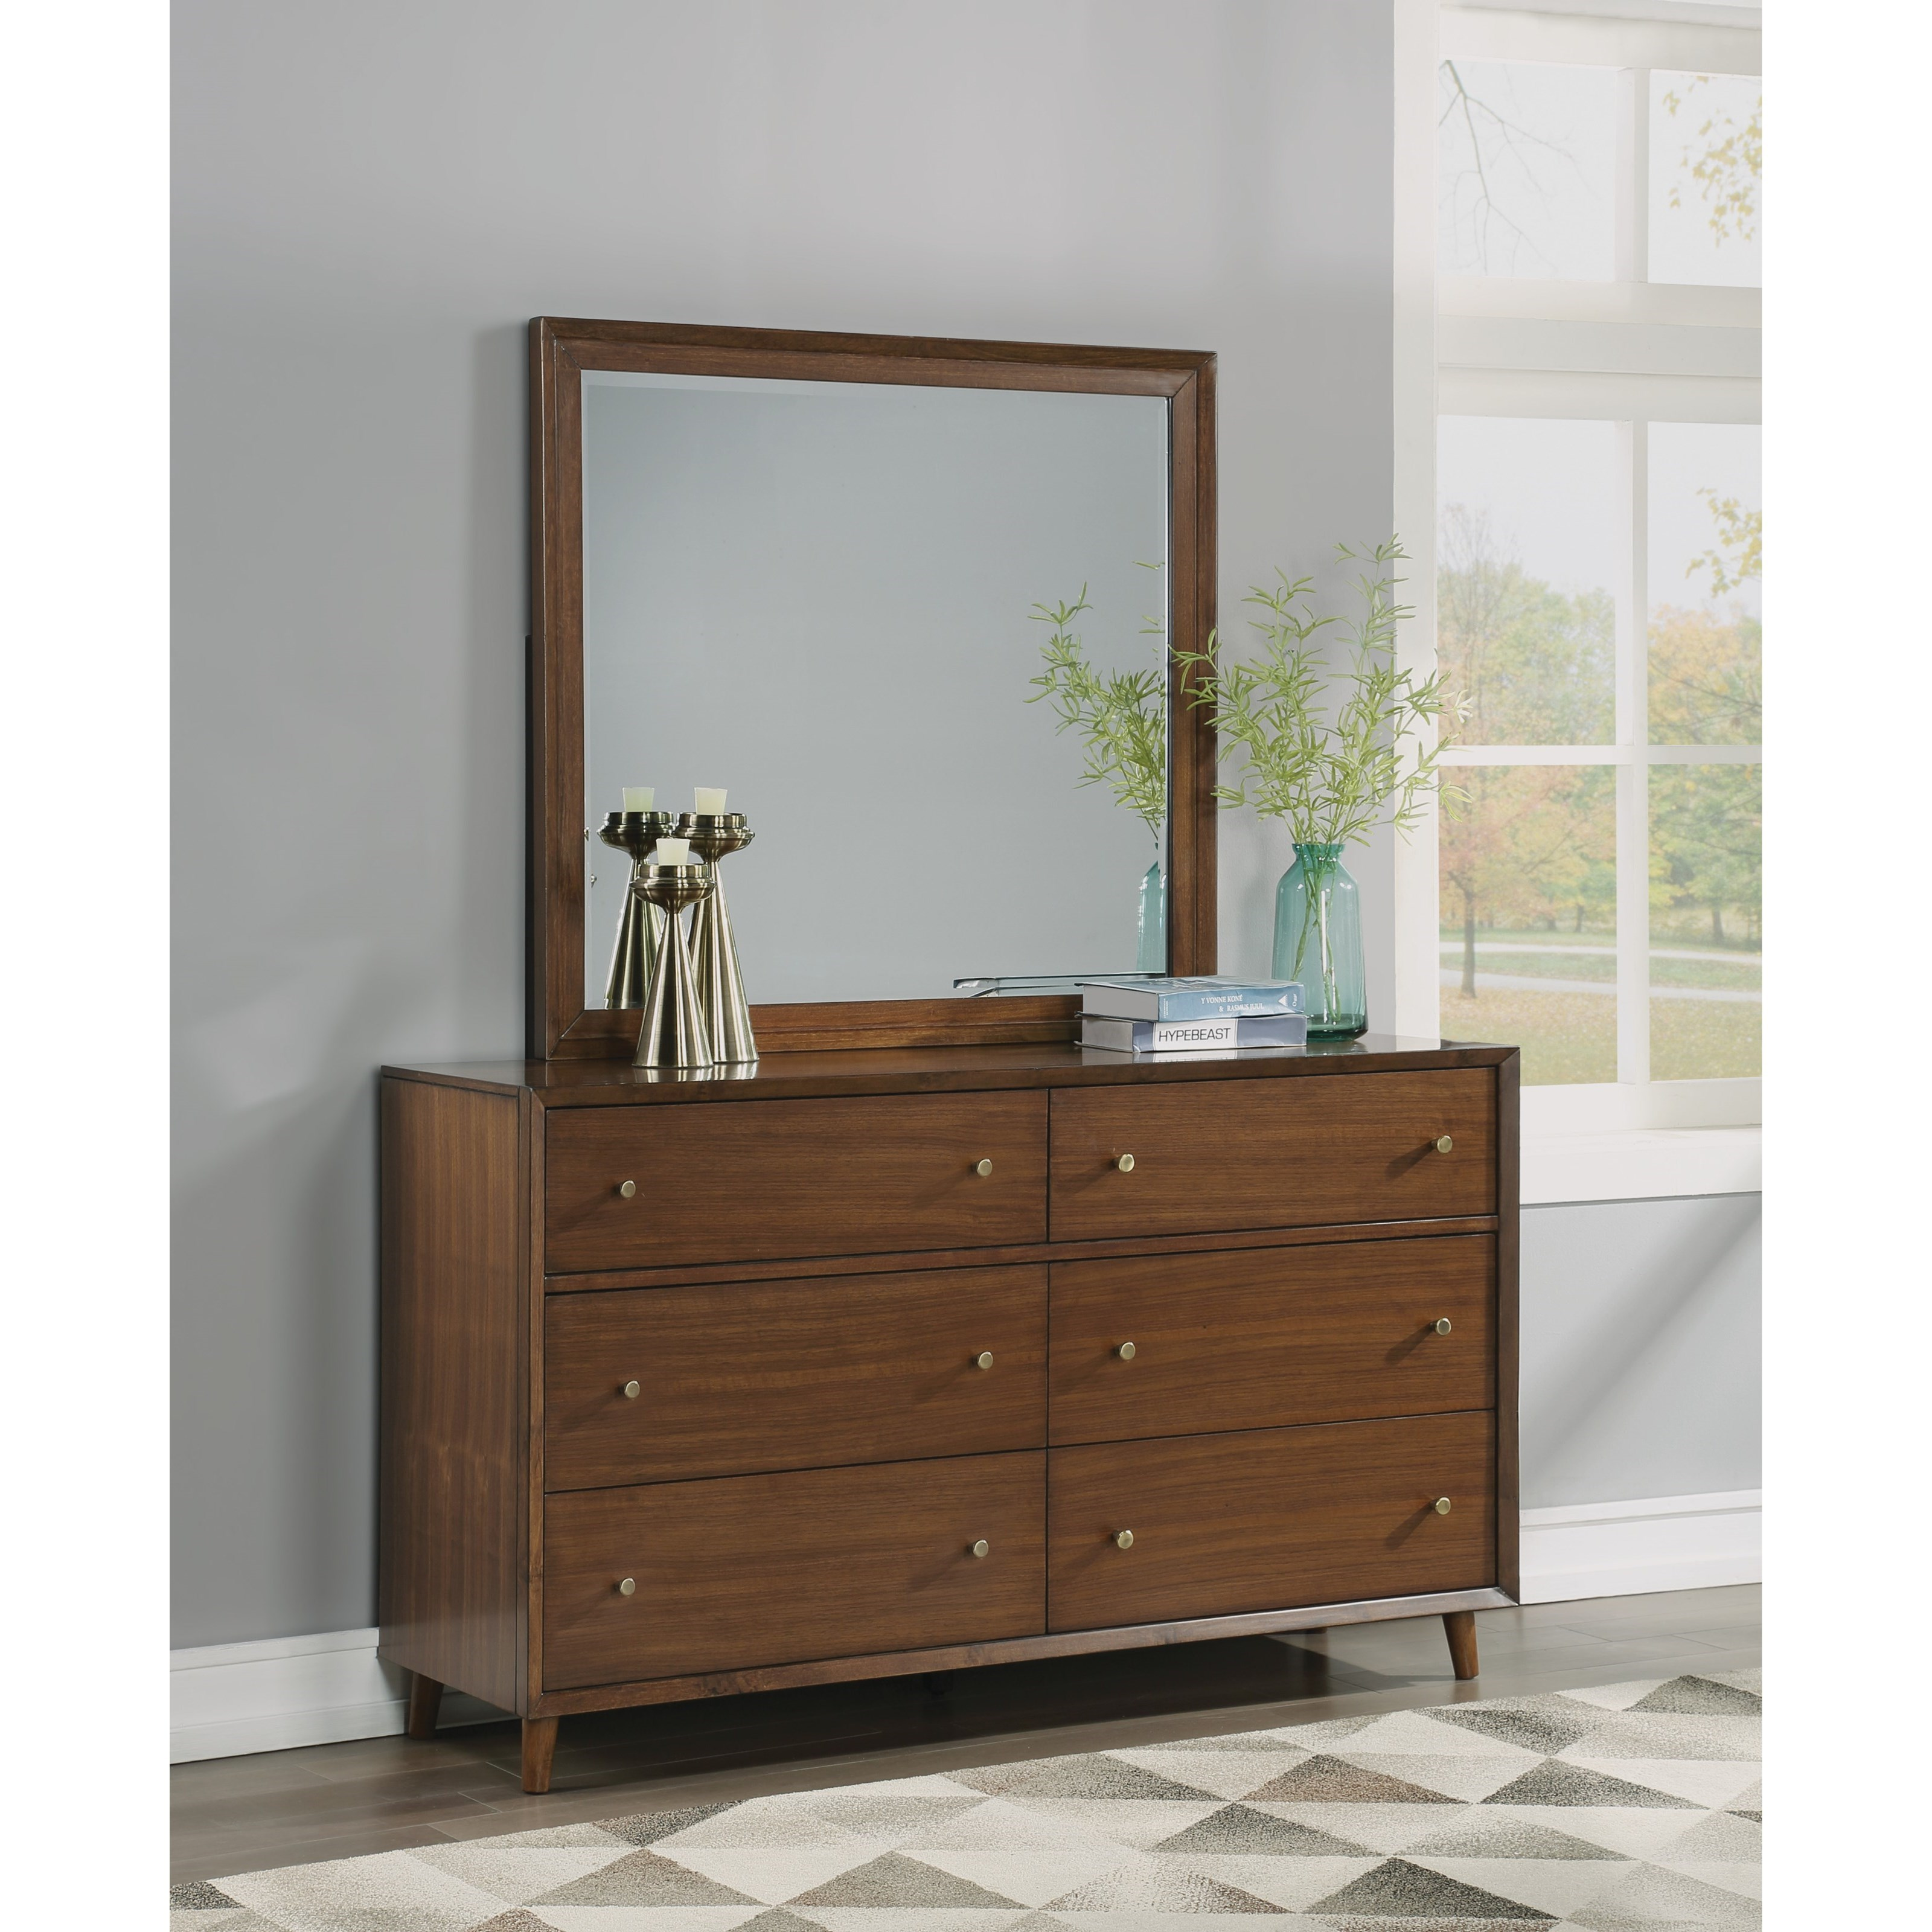 Ludwig Dresser and Mirror Set by Flexsteel Wynwood Collection at Pilgrim Furniture City